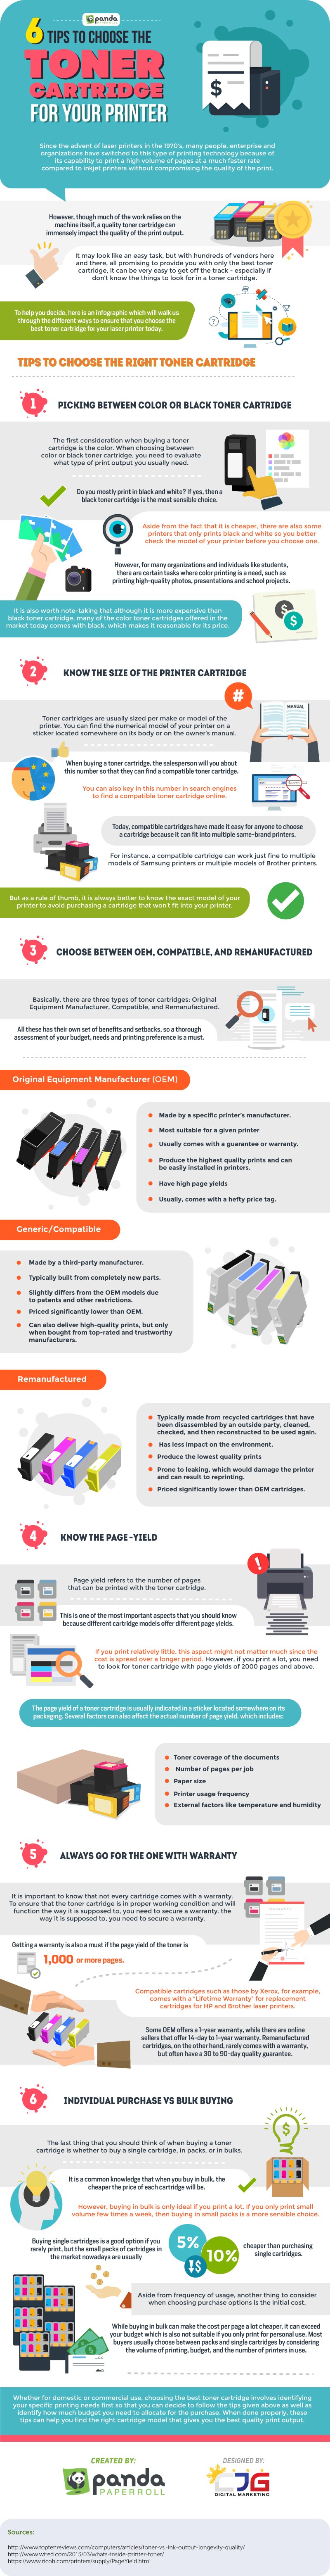 Toner Cartridge for Laser Printer Infographic